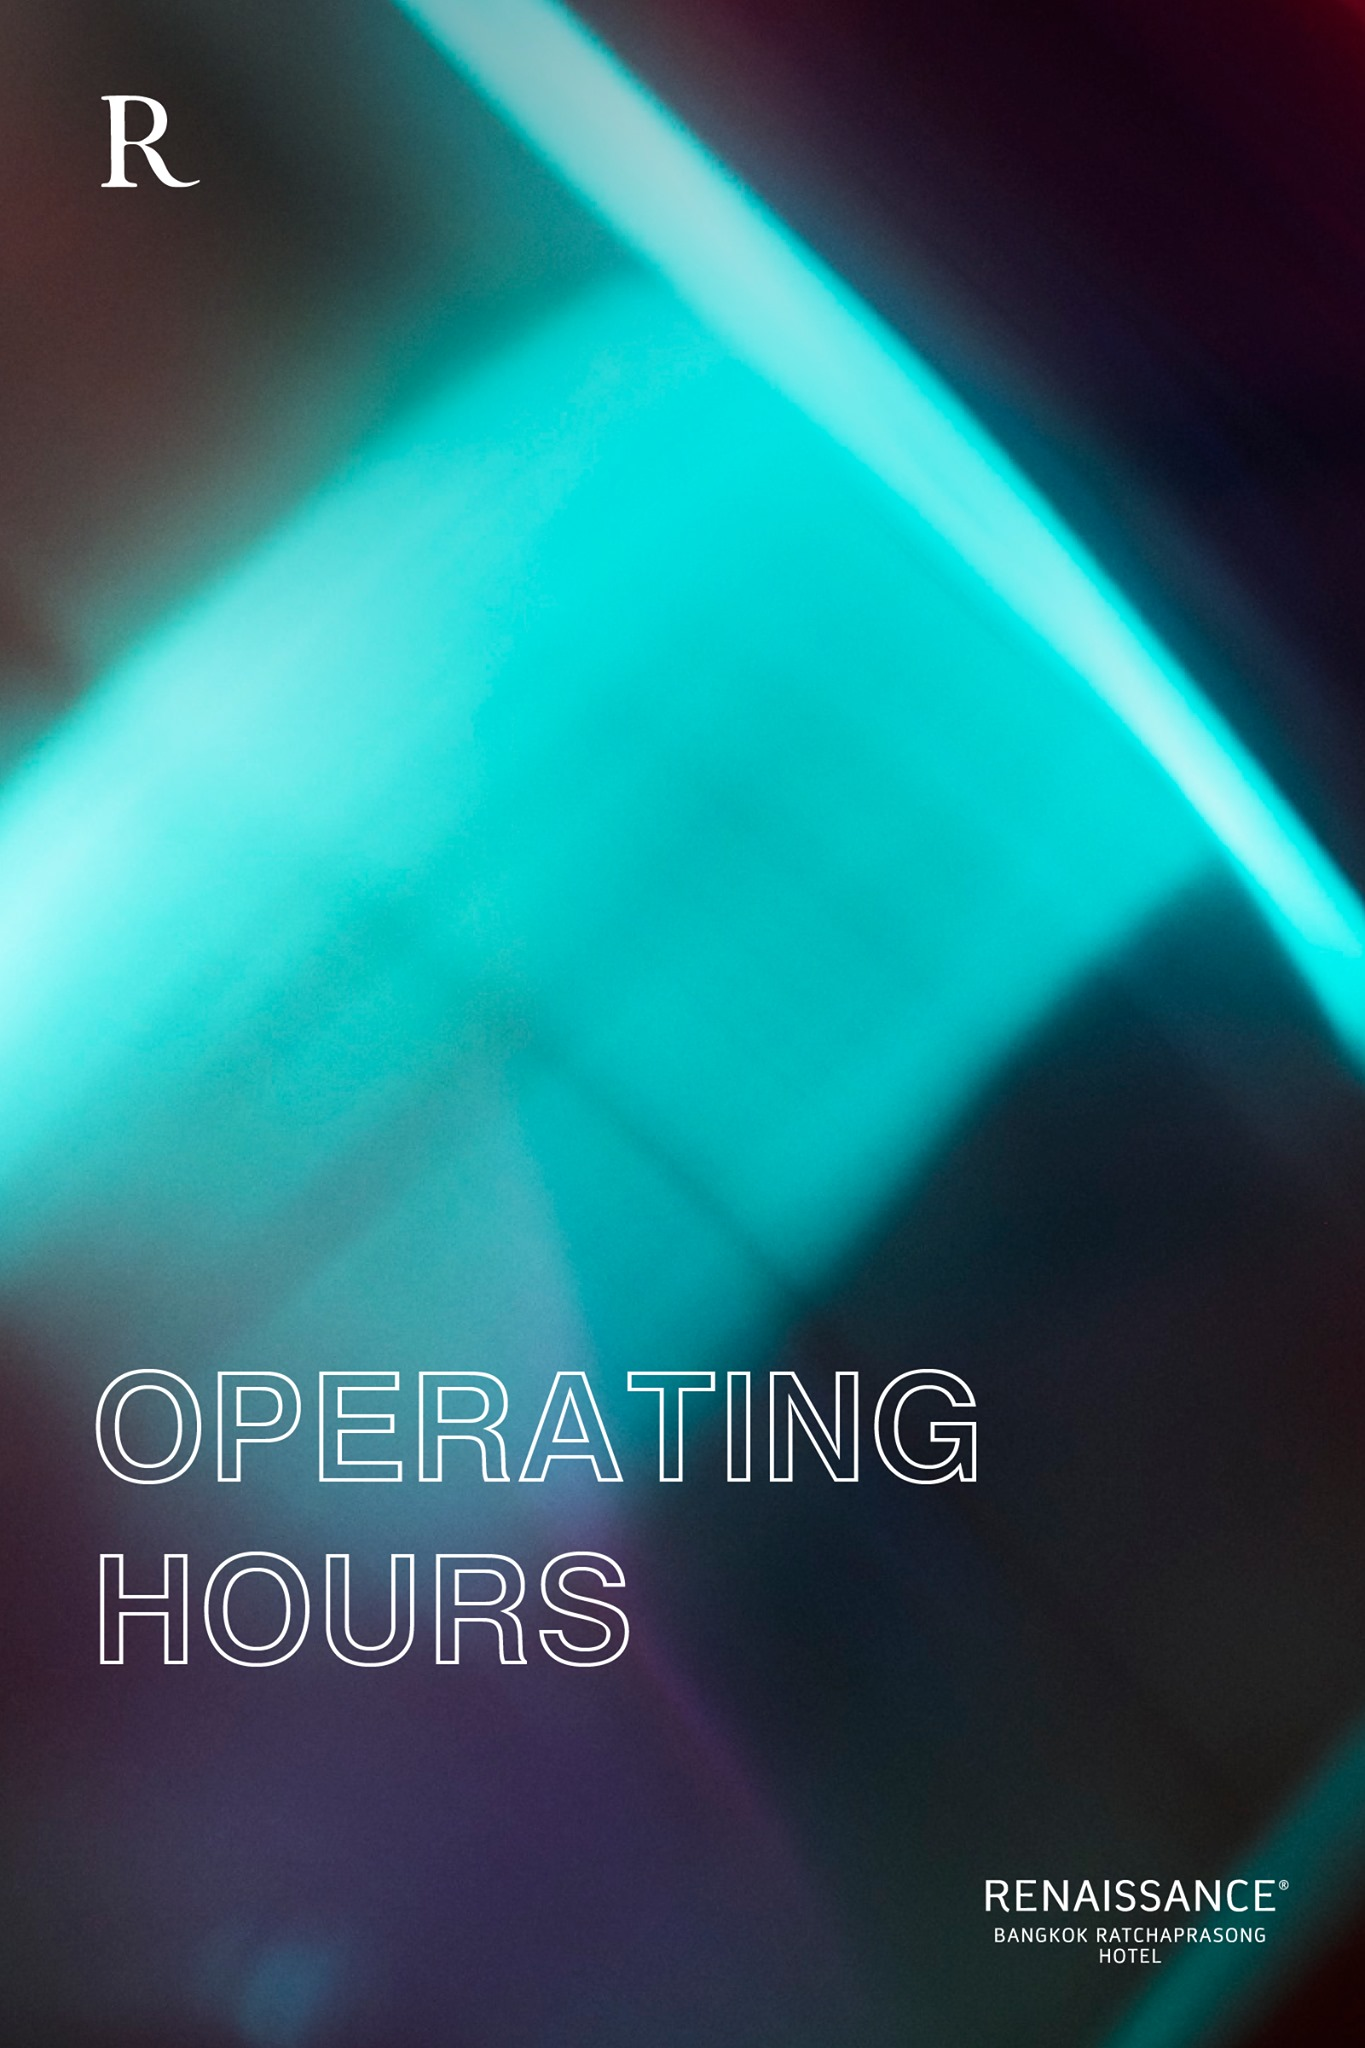 Renaissance Bangkok Ratchaprasong   would like to update operating hours